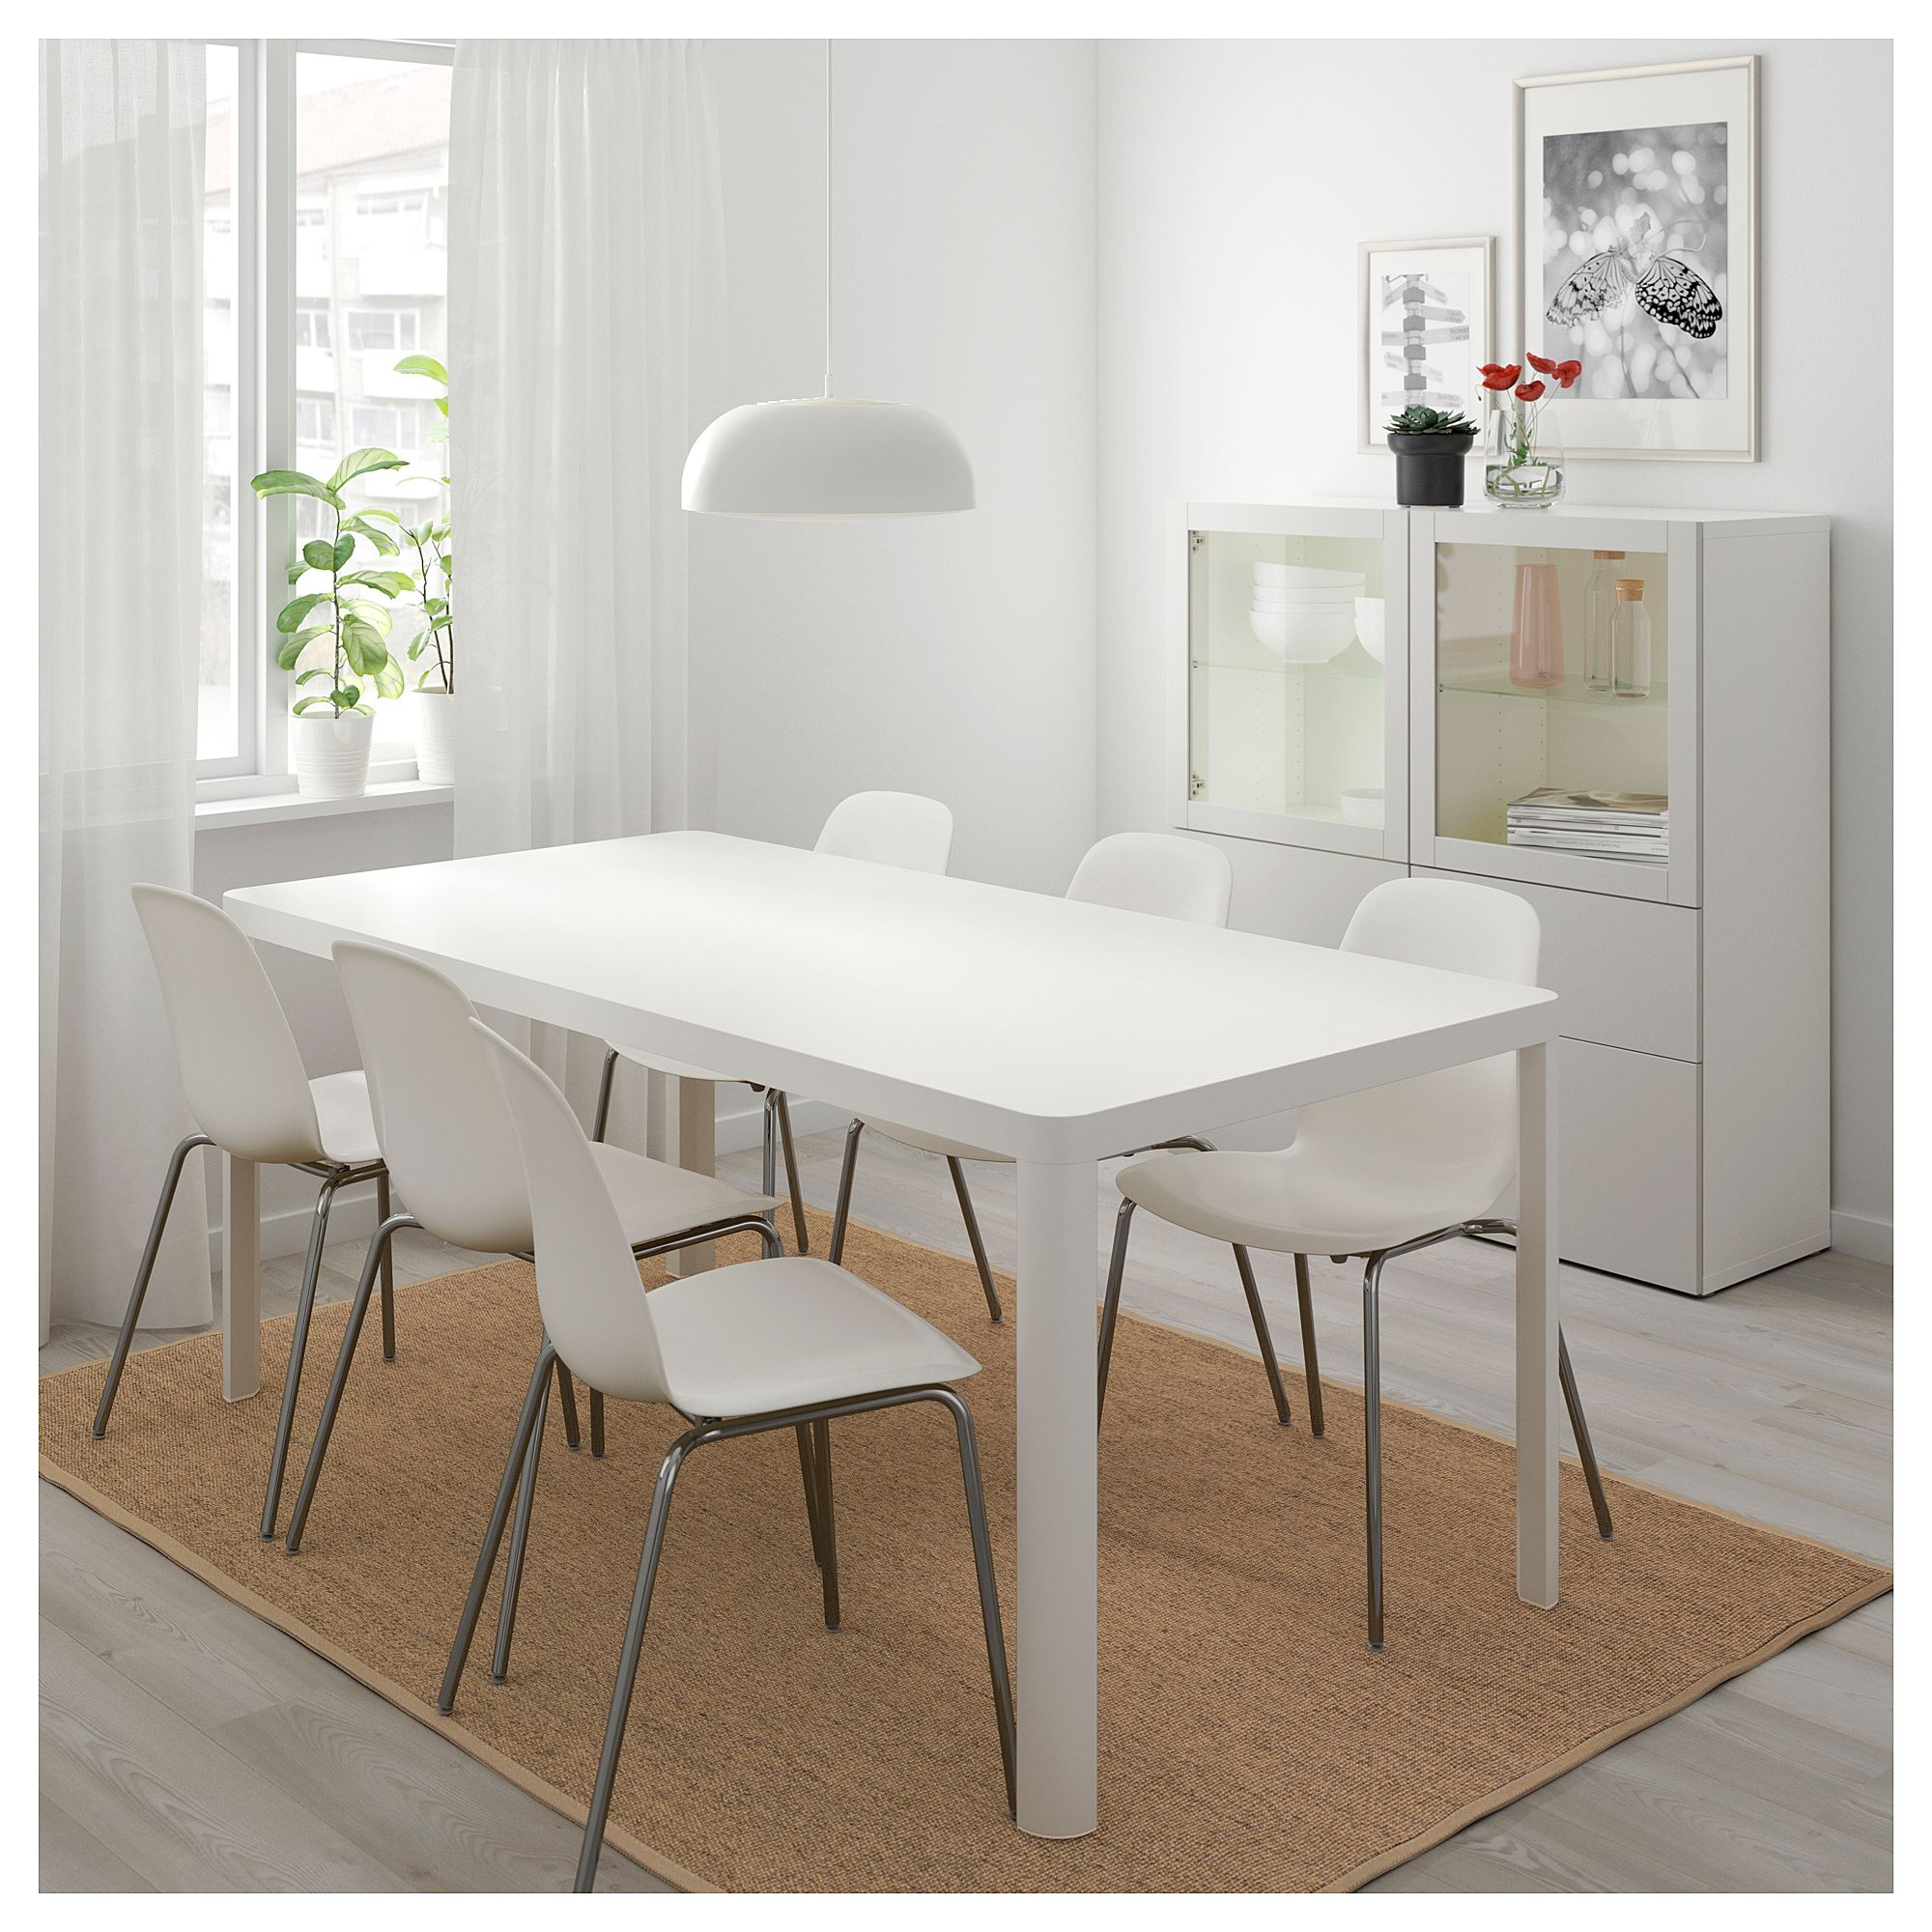 Ikea Table And Chair Set 2021